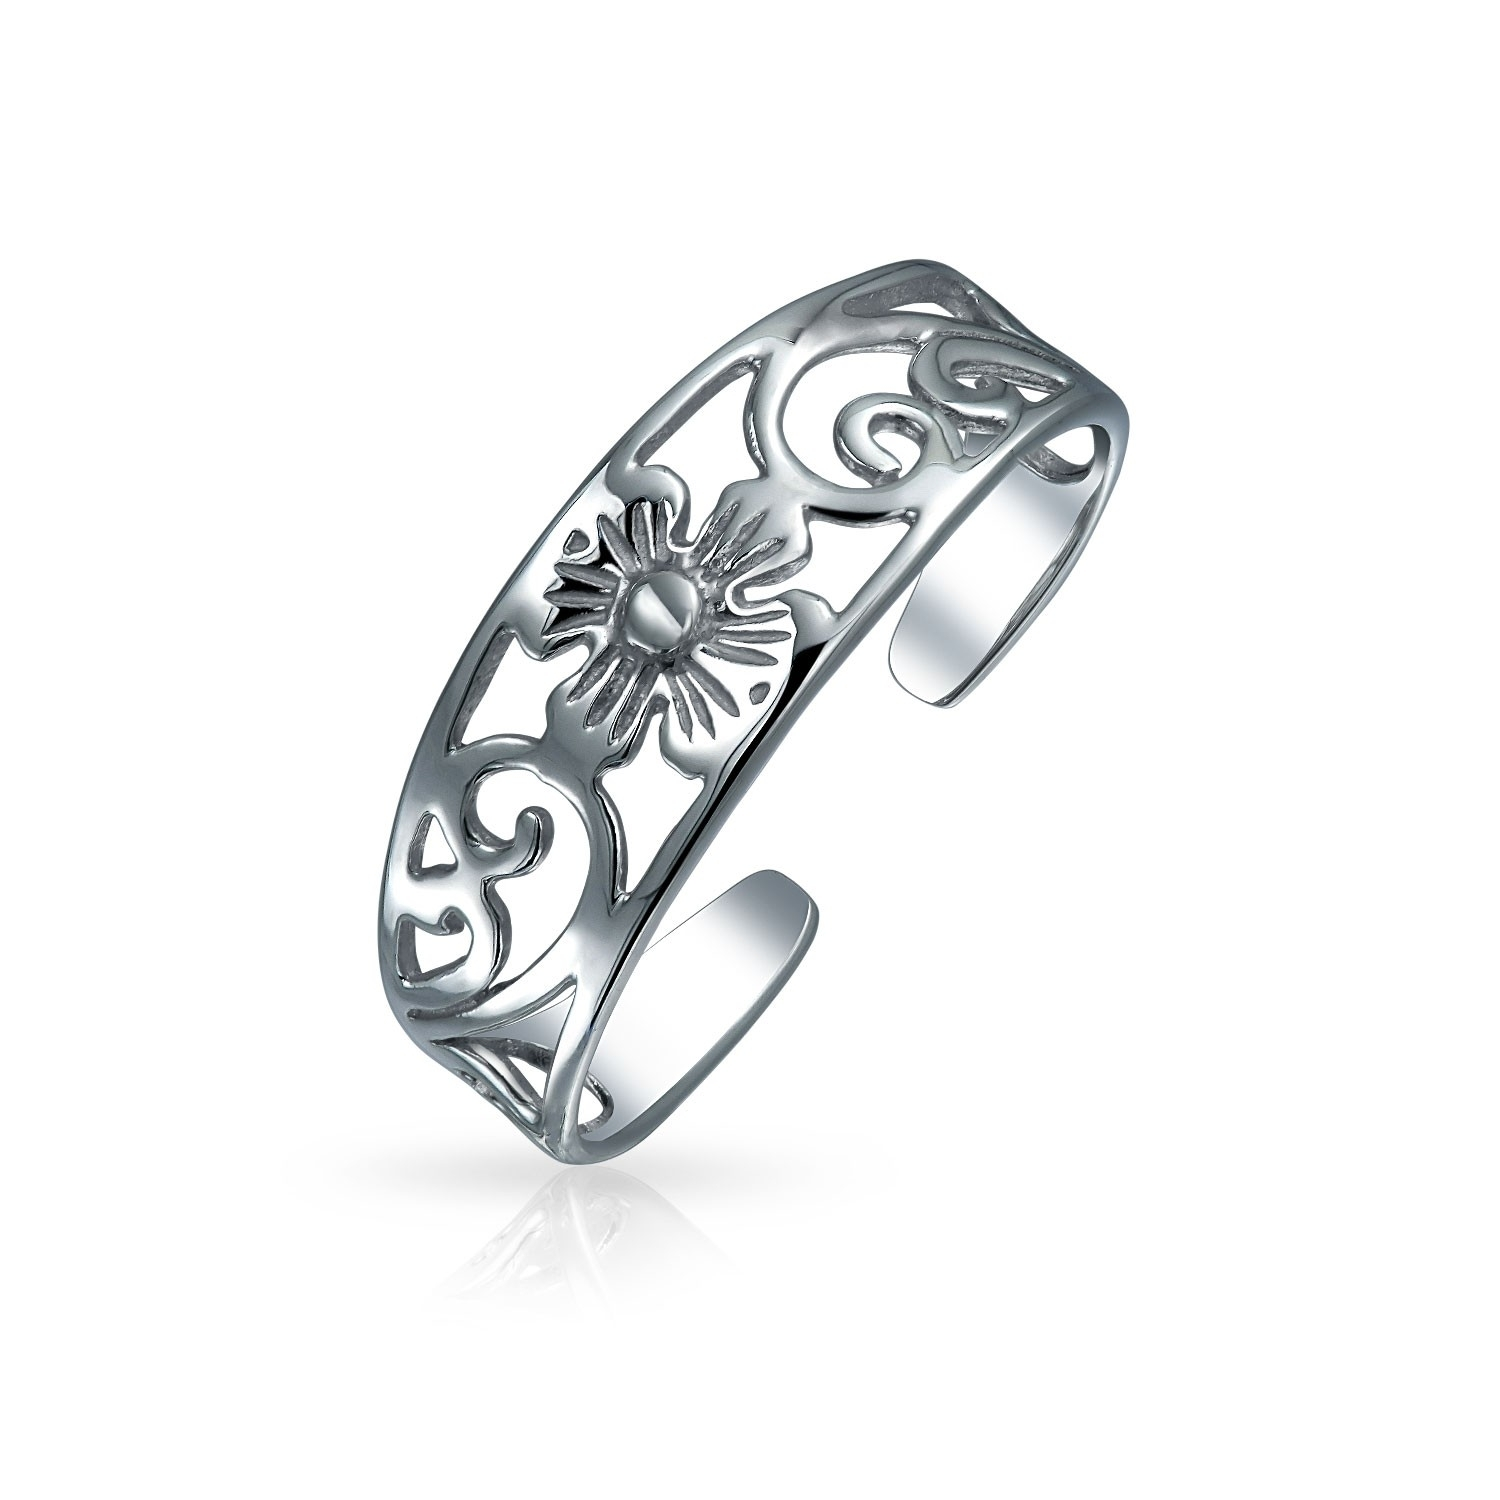 Adjustable Filigree Flower Toe Ring 925 Sterling Silver Midi Rings In Latest Sterling Silver Toe Rings (View 4 of 15)